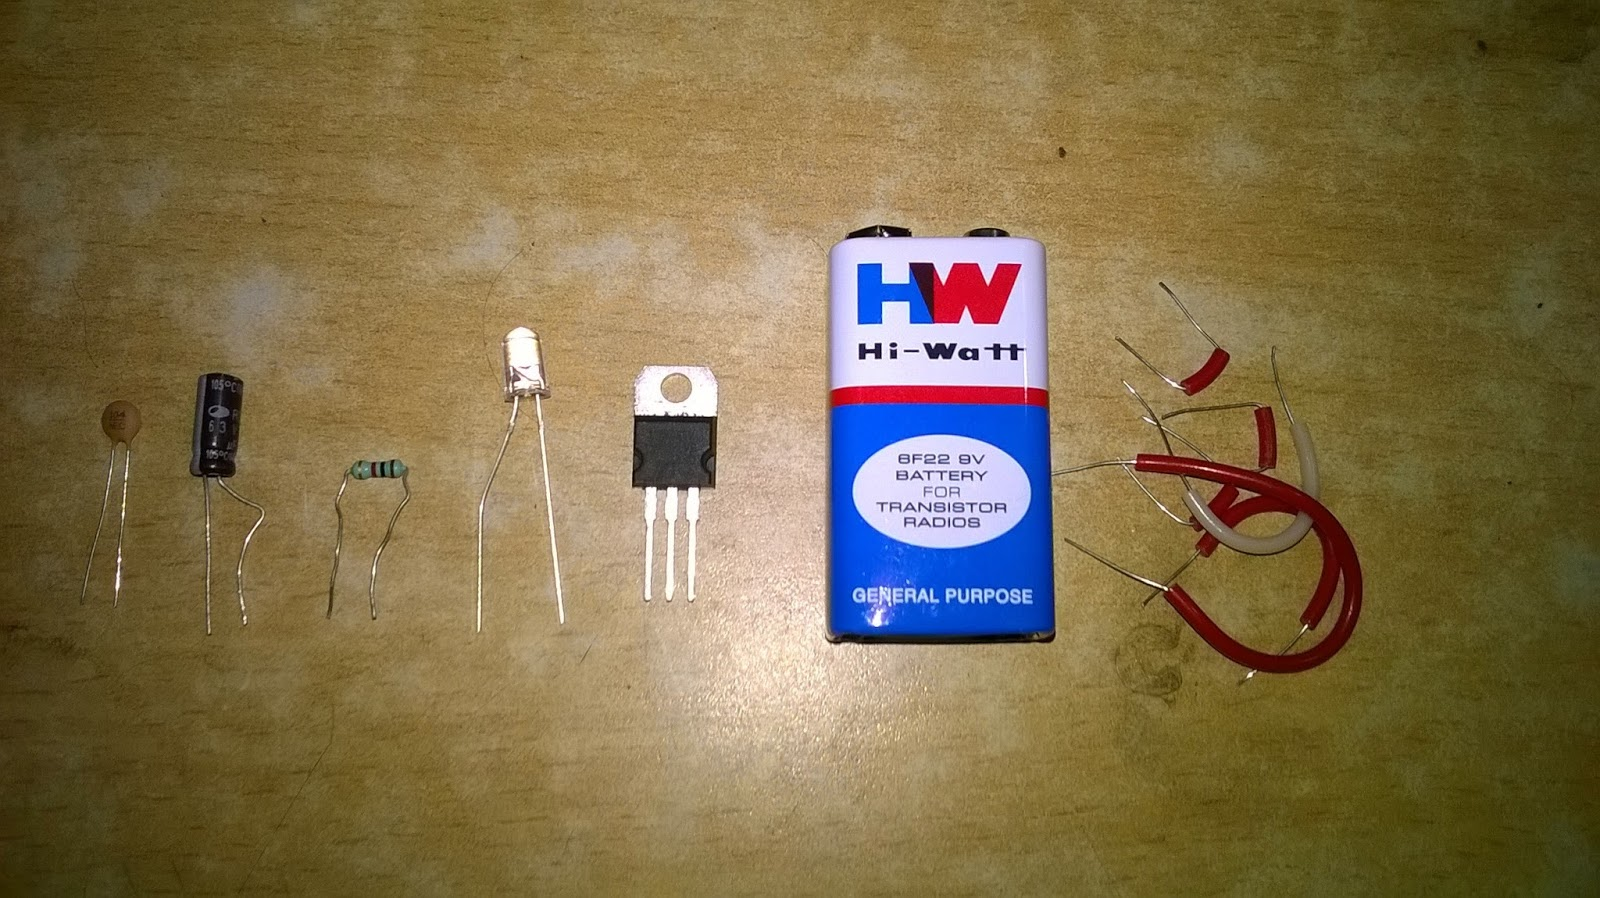 Basic Electonics Volt Regulator Circuit Using 7805 Ic Voltage Lm7805 Components Used A Capacitors 01uf 1uf B Resistors 1k C Led 5mm D Lm E 9v Power Supply F Connecting Wires